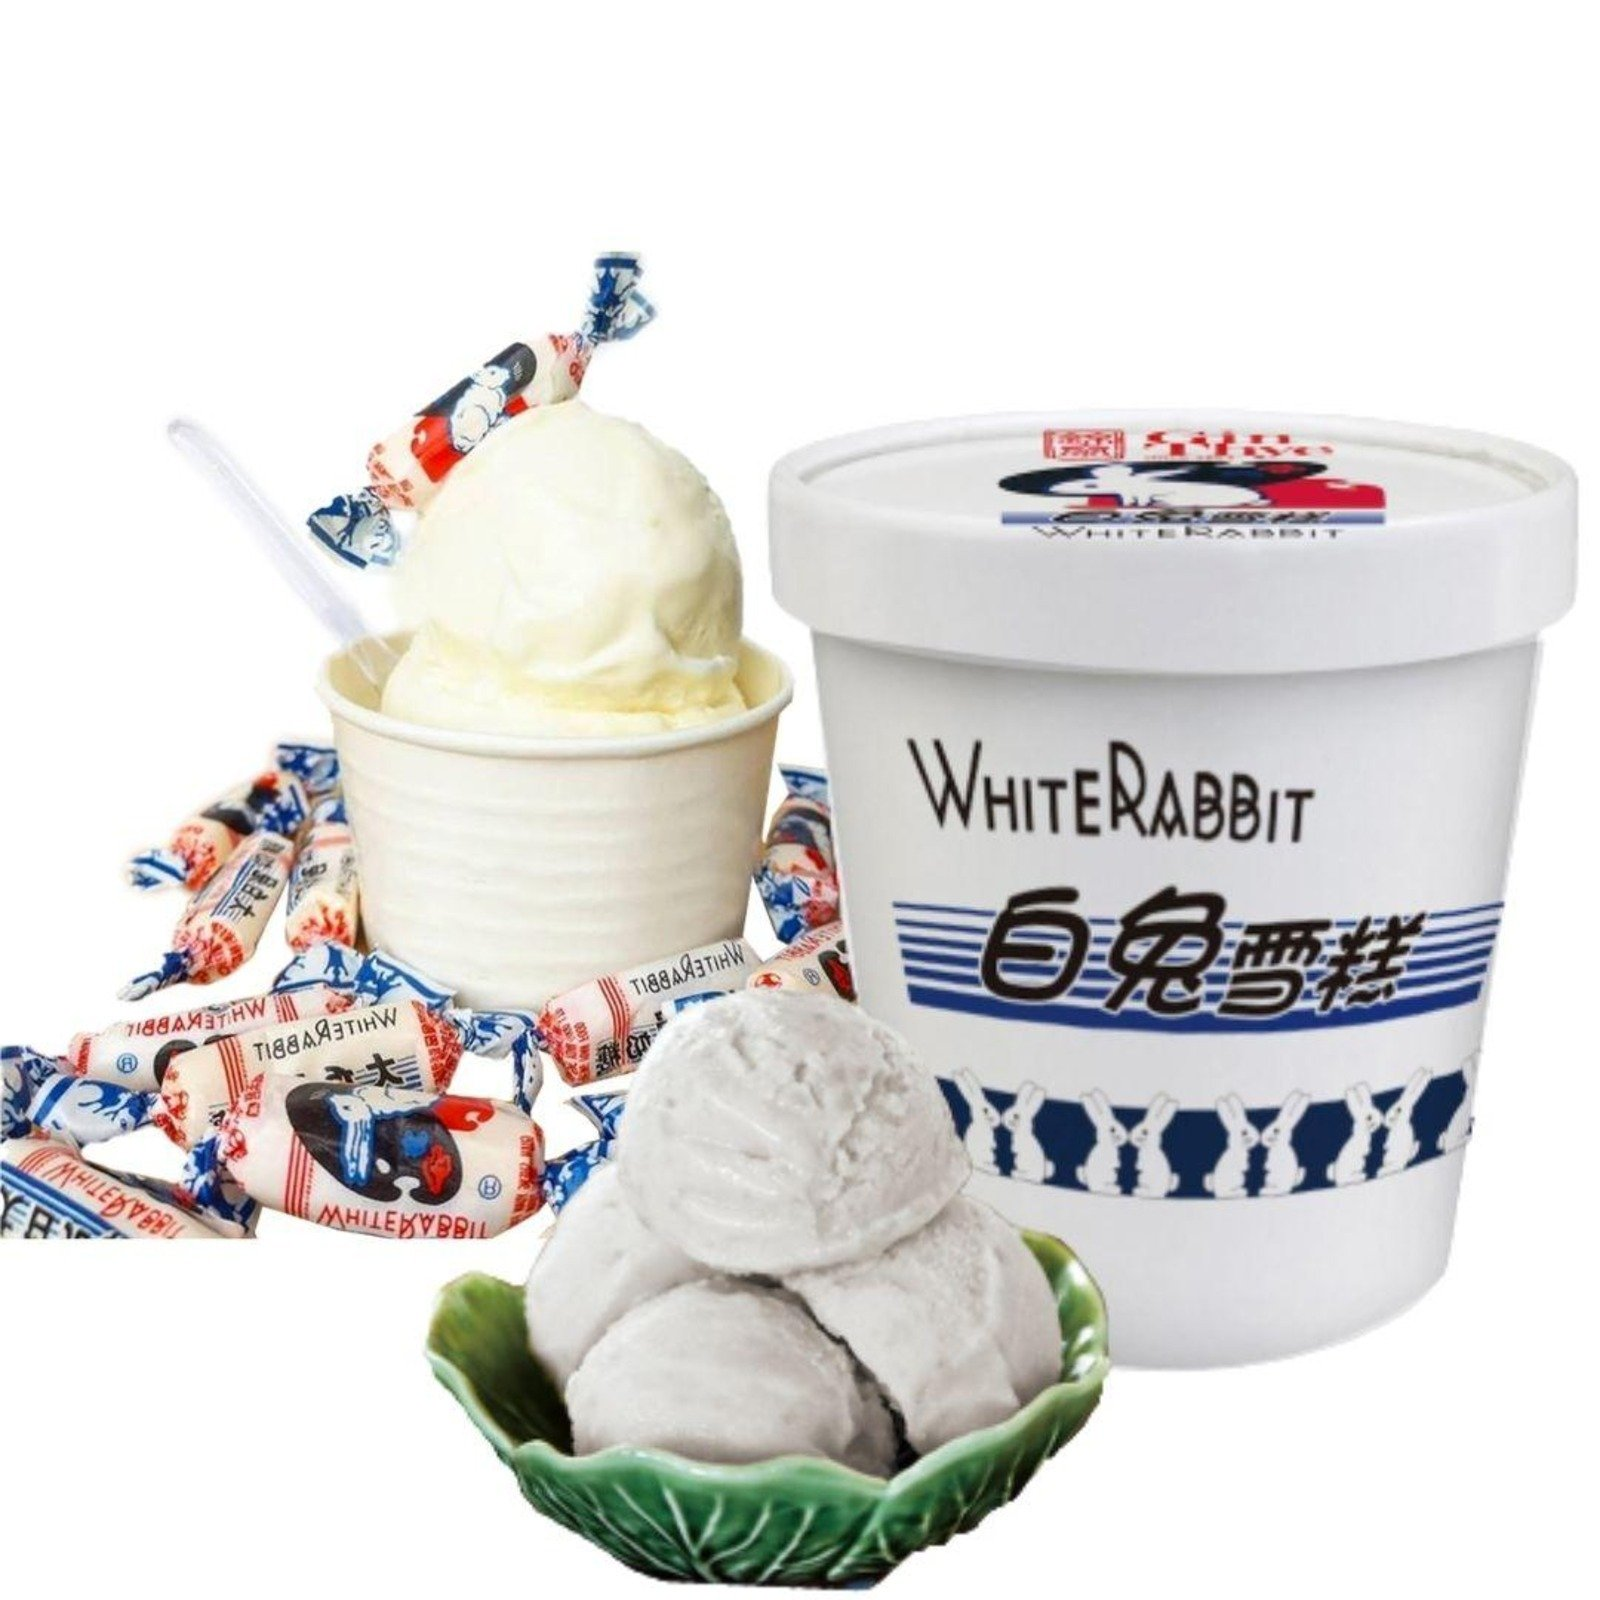 white rabbit ice cream